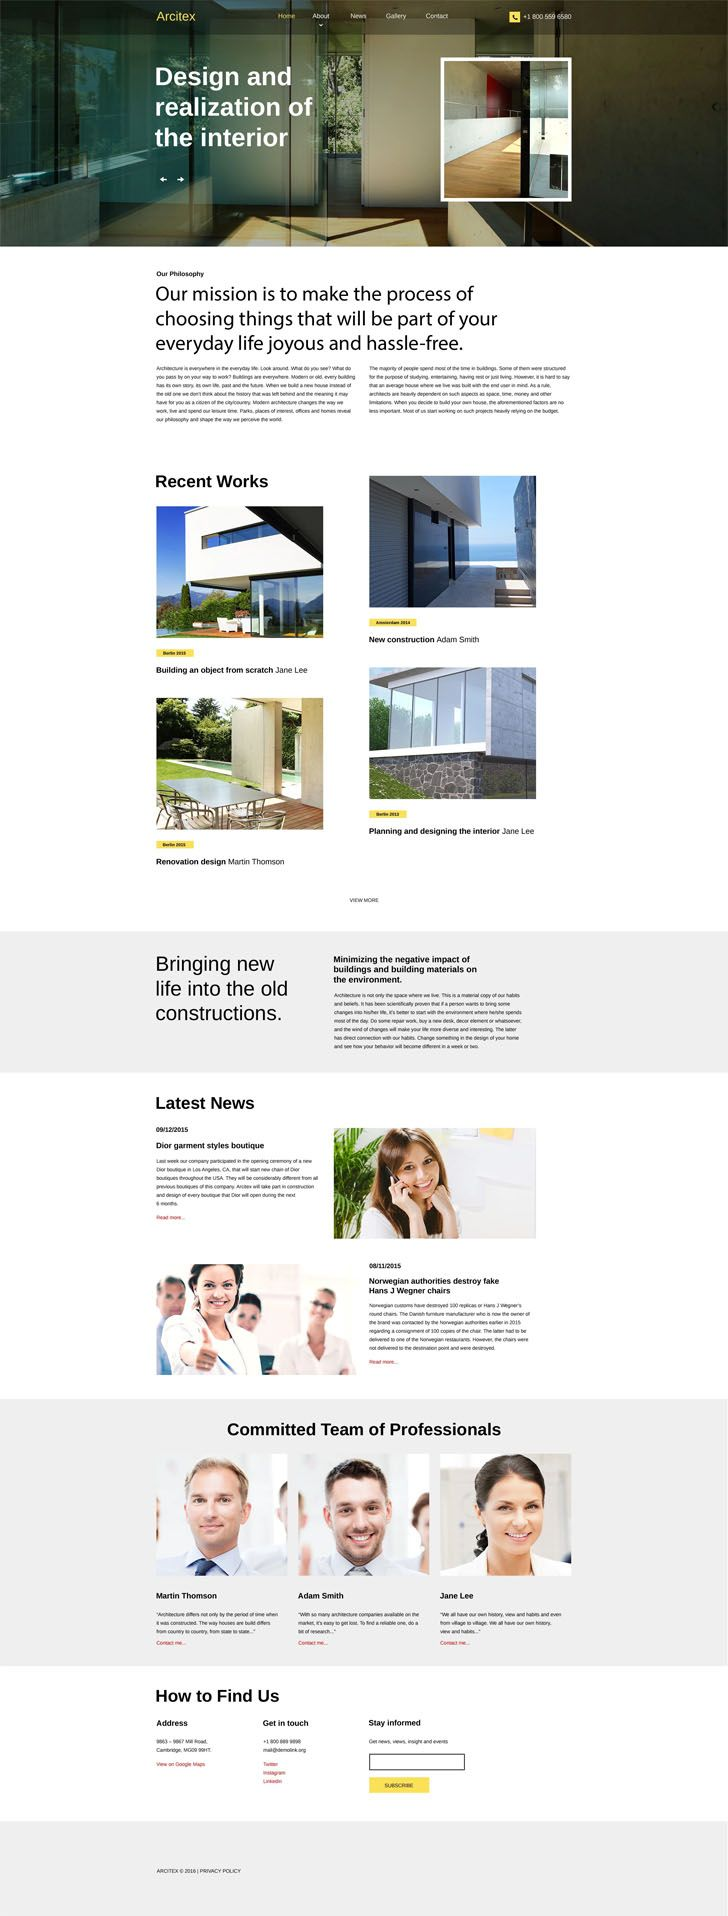 #Responsive #architecture #site #template boasts a thought-out design built with CSS3, HTML5, jQuery, and SASS techniques. By means of a top page-wide slider, you can focus prospects' attention on your offerings as soon as they show up on your site. This effective intro area is overlaid with a transparent, slightly subdued bar that features your logo, menu items and contact details. The rest of this grid-based layout is clean and light, which sets a contrast with black typography. It…